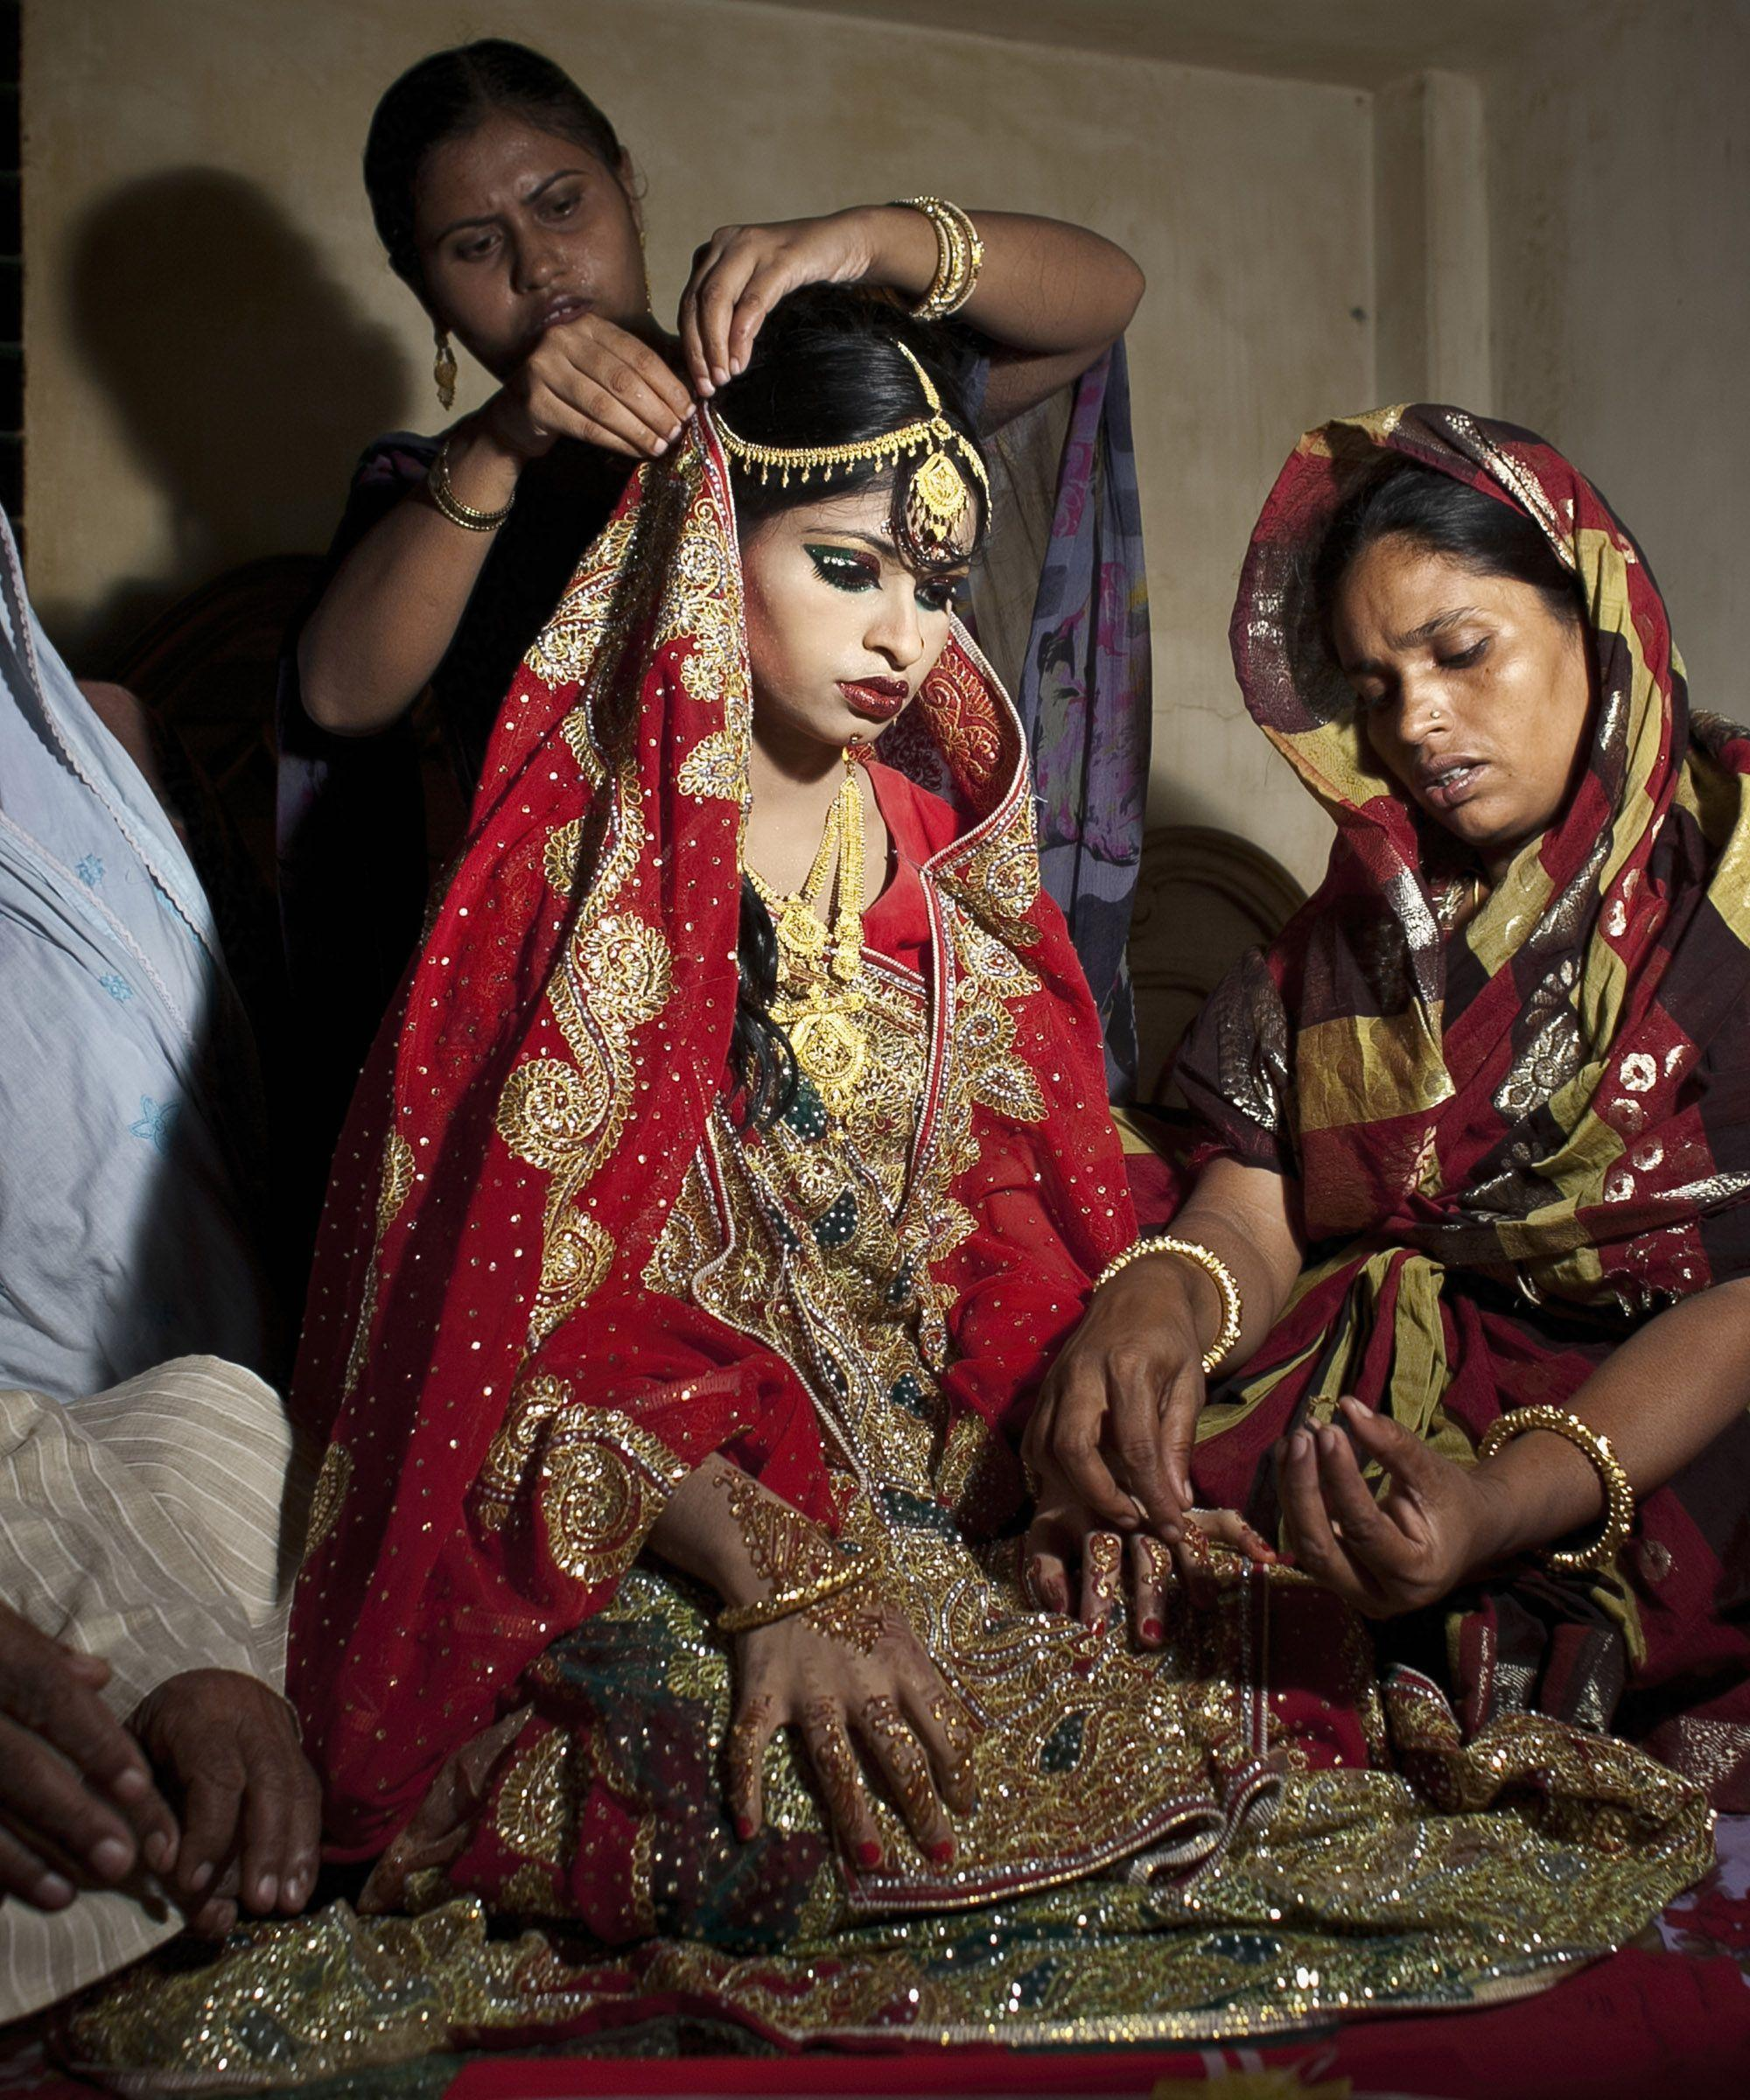 haunting photos of a 15 year old forced to marry a man twice her age